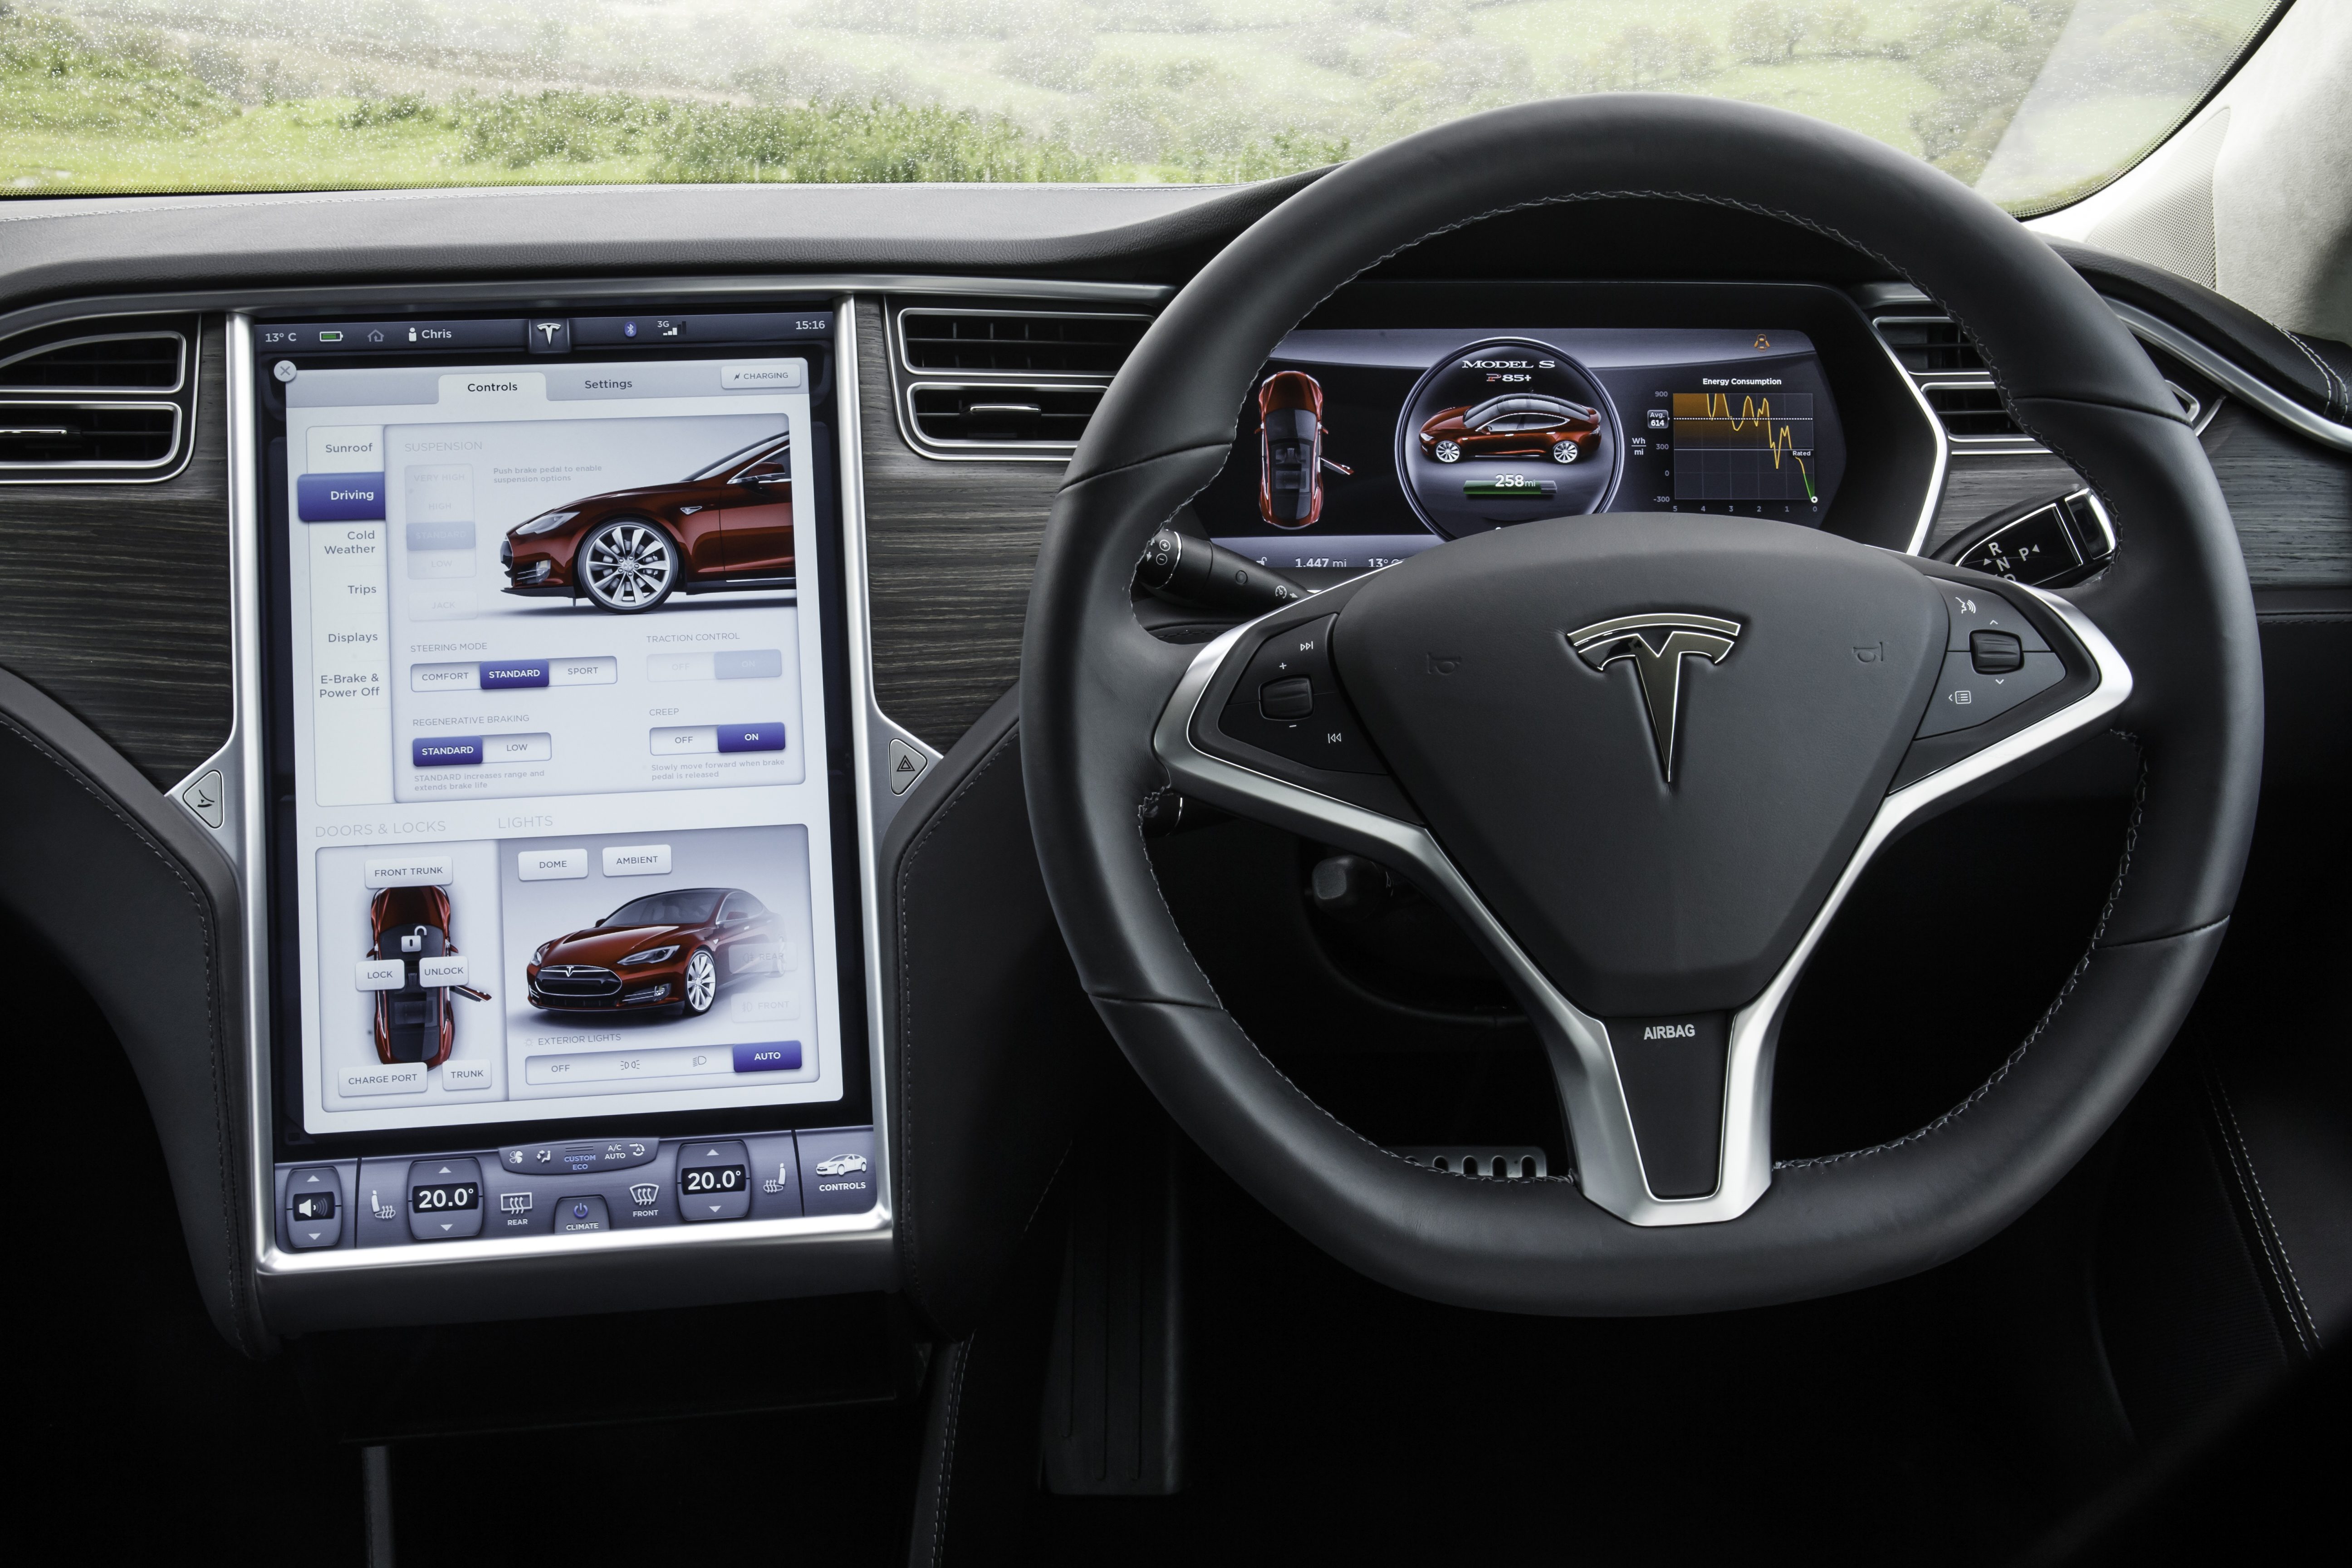 telstra to provide mobile connectivity solutions in tesla model s telematicswire. Black Bedroom Furniture Sets. Home Design Ideas